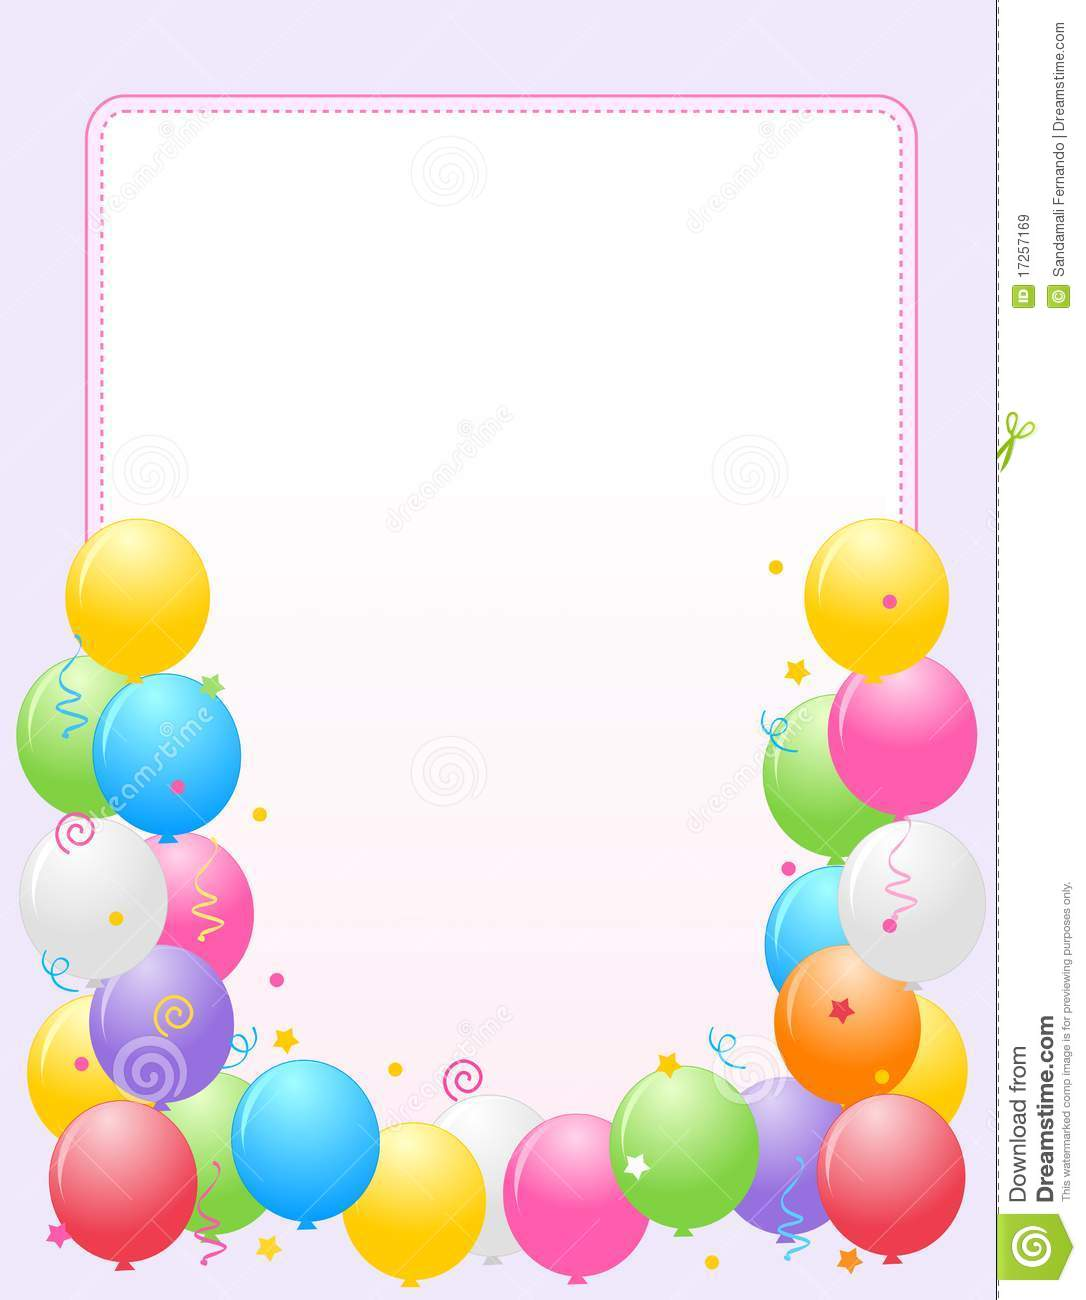 Colorful Balloons Border / Party Frame Royalty Free Stock ...